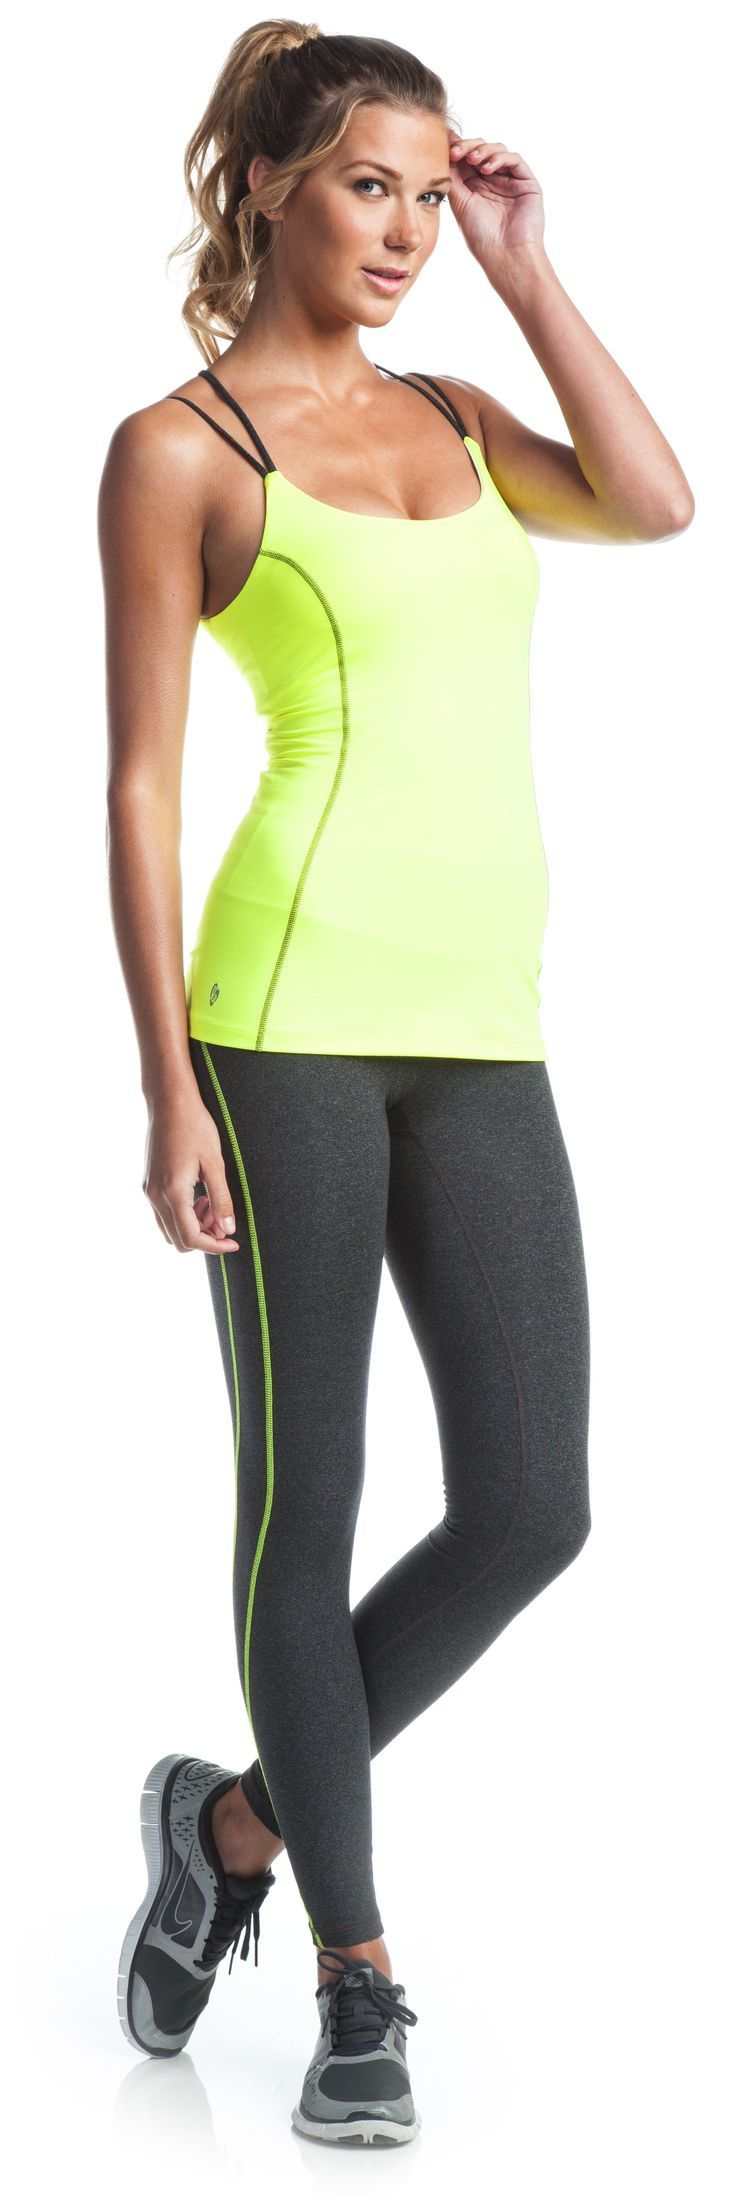 22 Yoga Outfits For Women